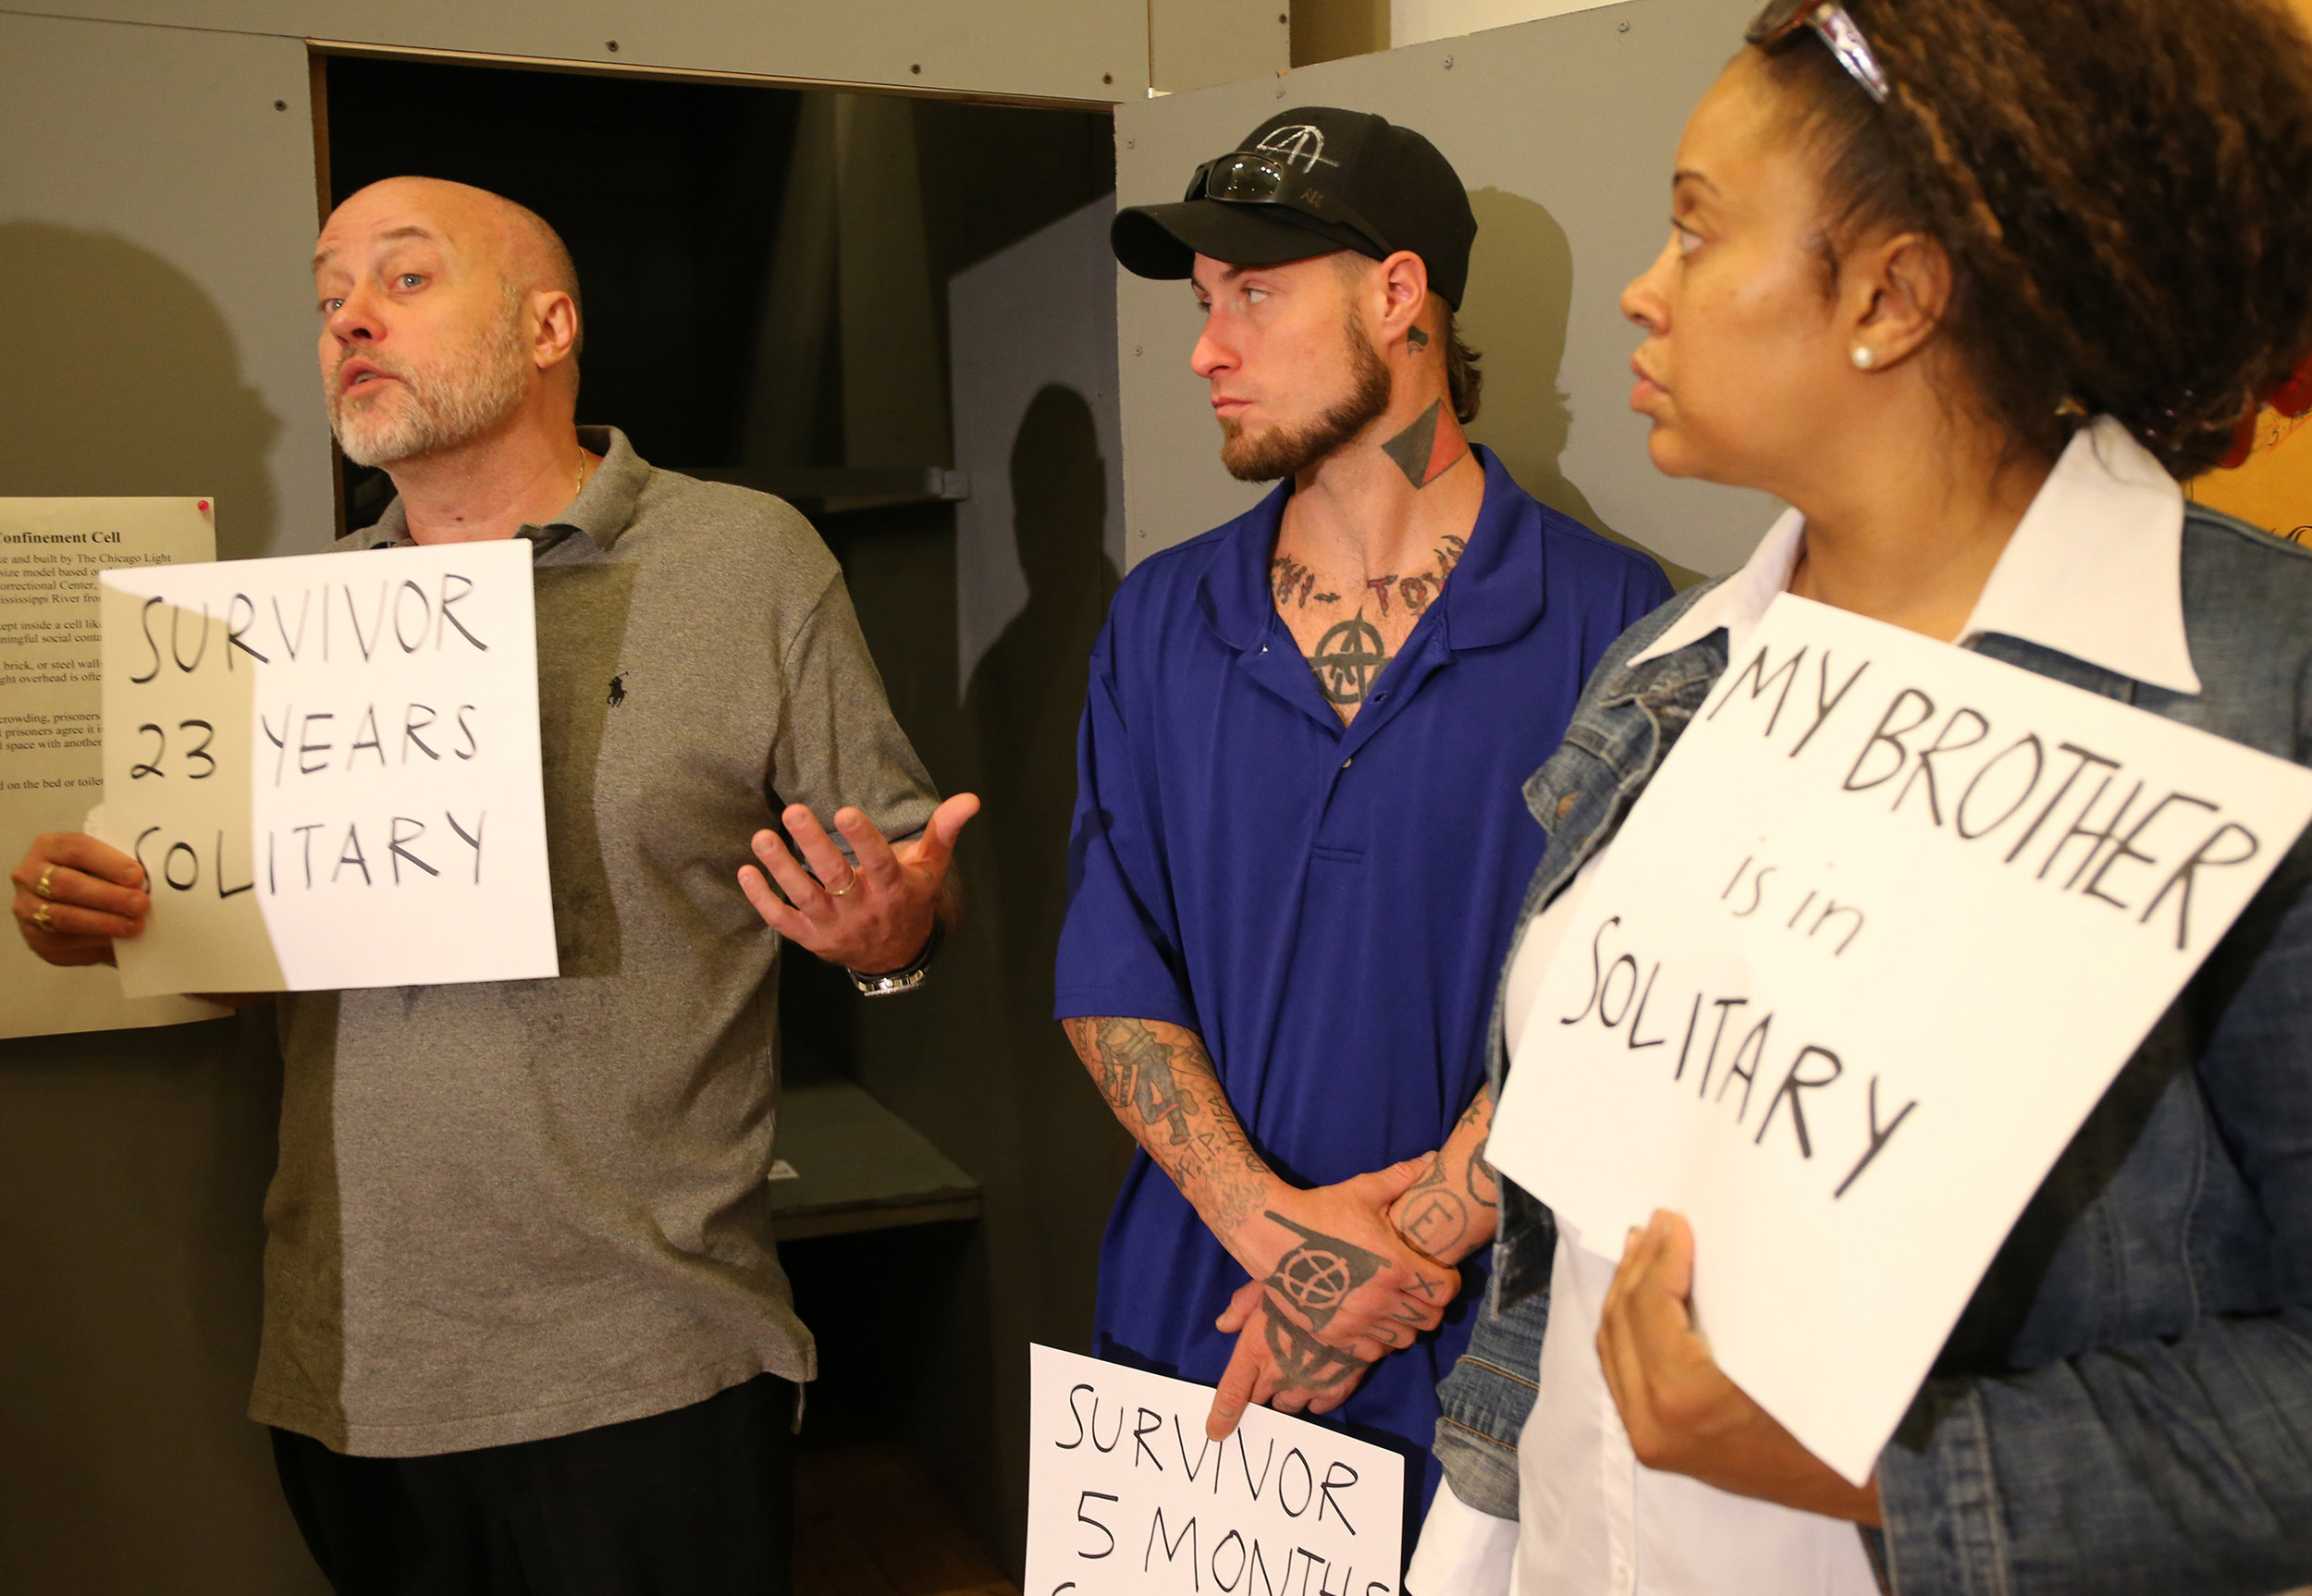 Brian Nelson, left, who spent 23 years in solitary confinement, speaks about his time there on June 24, 2015, during a press conference regarding the class-action lawsuit filed on behalf of prisoners against the Illinois Department of Corrections for its overuse and misuse of solitary confinement in Illinois prisons in Chicago. Antonio Perez/Chicago Tribune/TNS via Getty Images